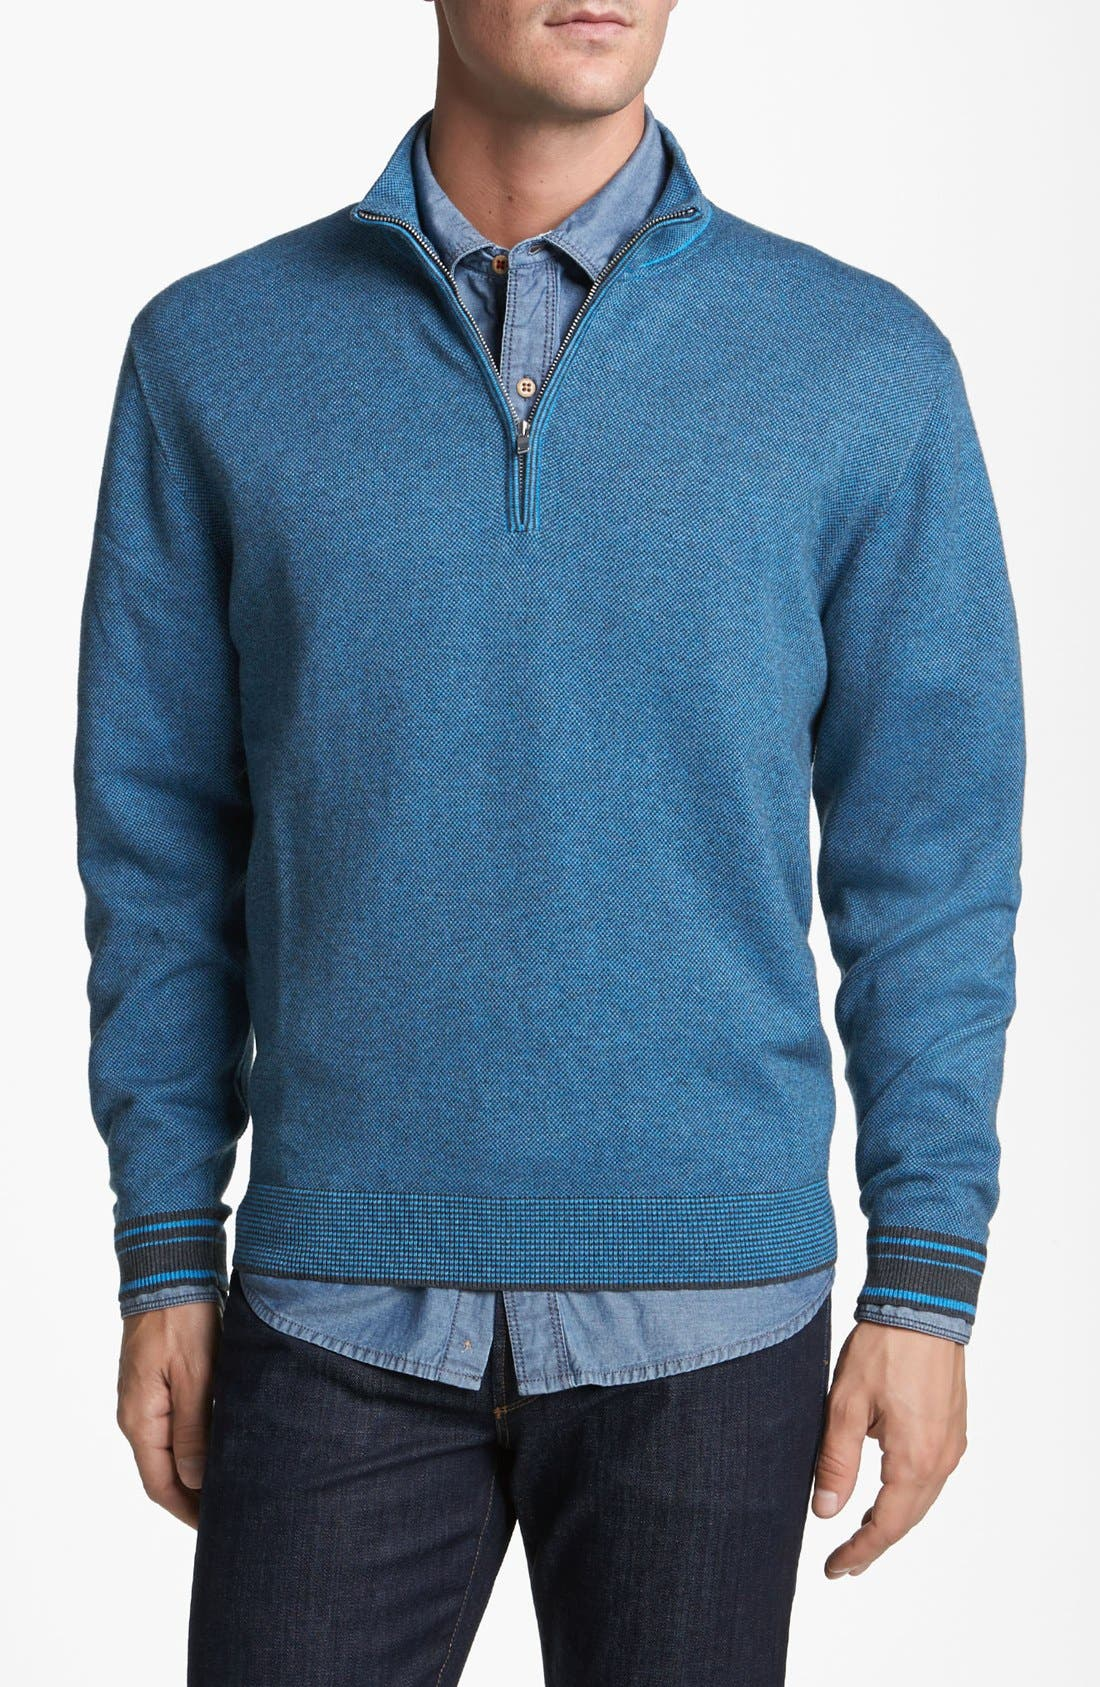 Alternate Image 1 Selected - Cutter & Buck 'Haven' Half Zip Bird's Eye Sweater (Big & Tall)